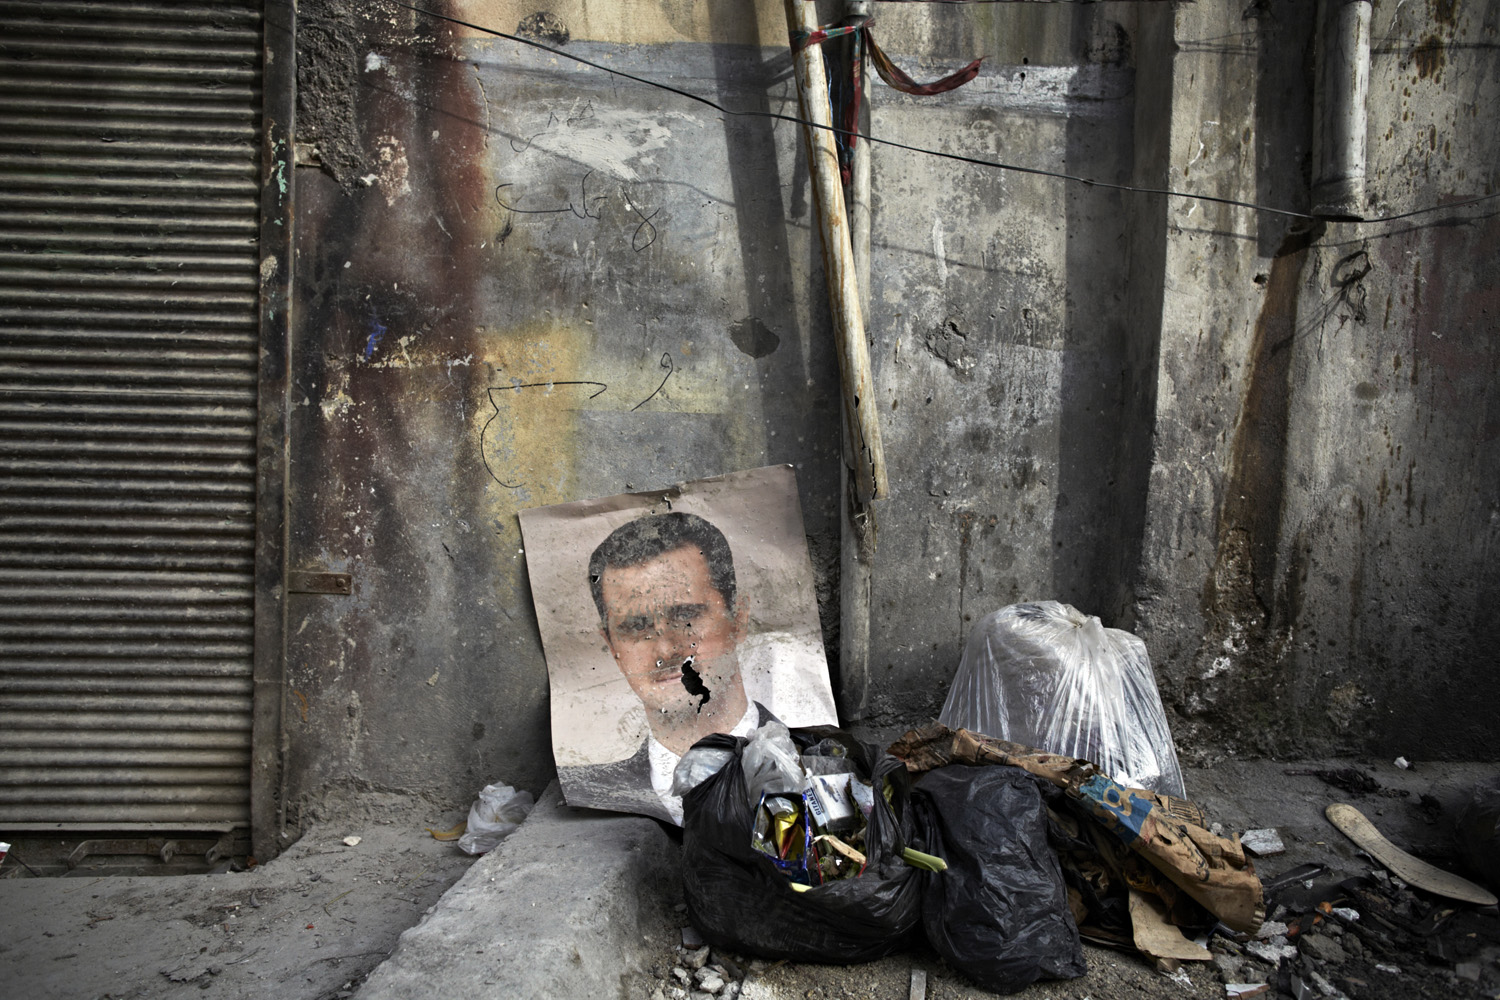 March 30, 2013. The bullet-riddled poster of Syria's current president in the newly liberated neighborhood of Sheikh Maksoud in Aleppo, Syria.